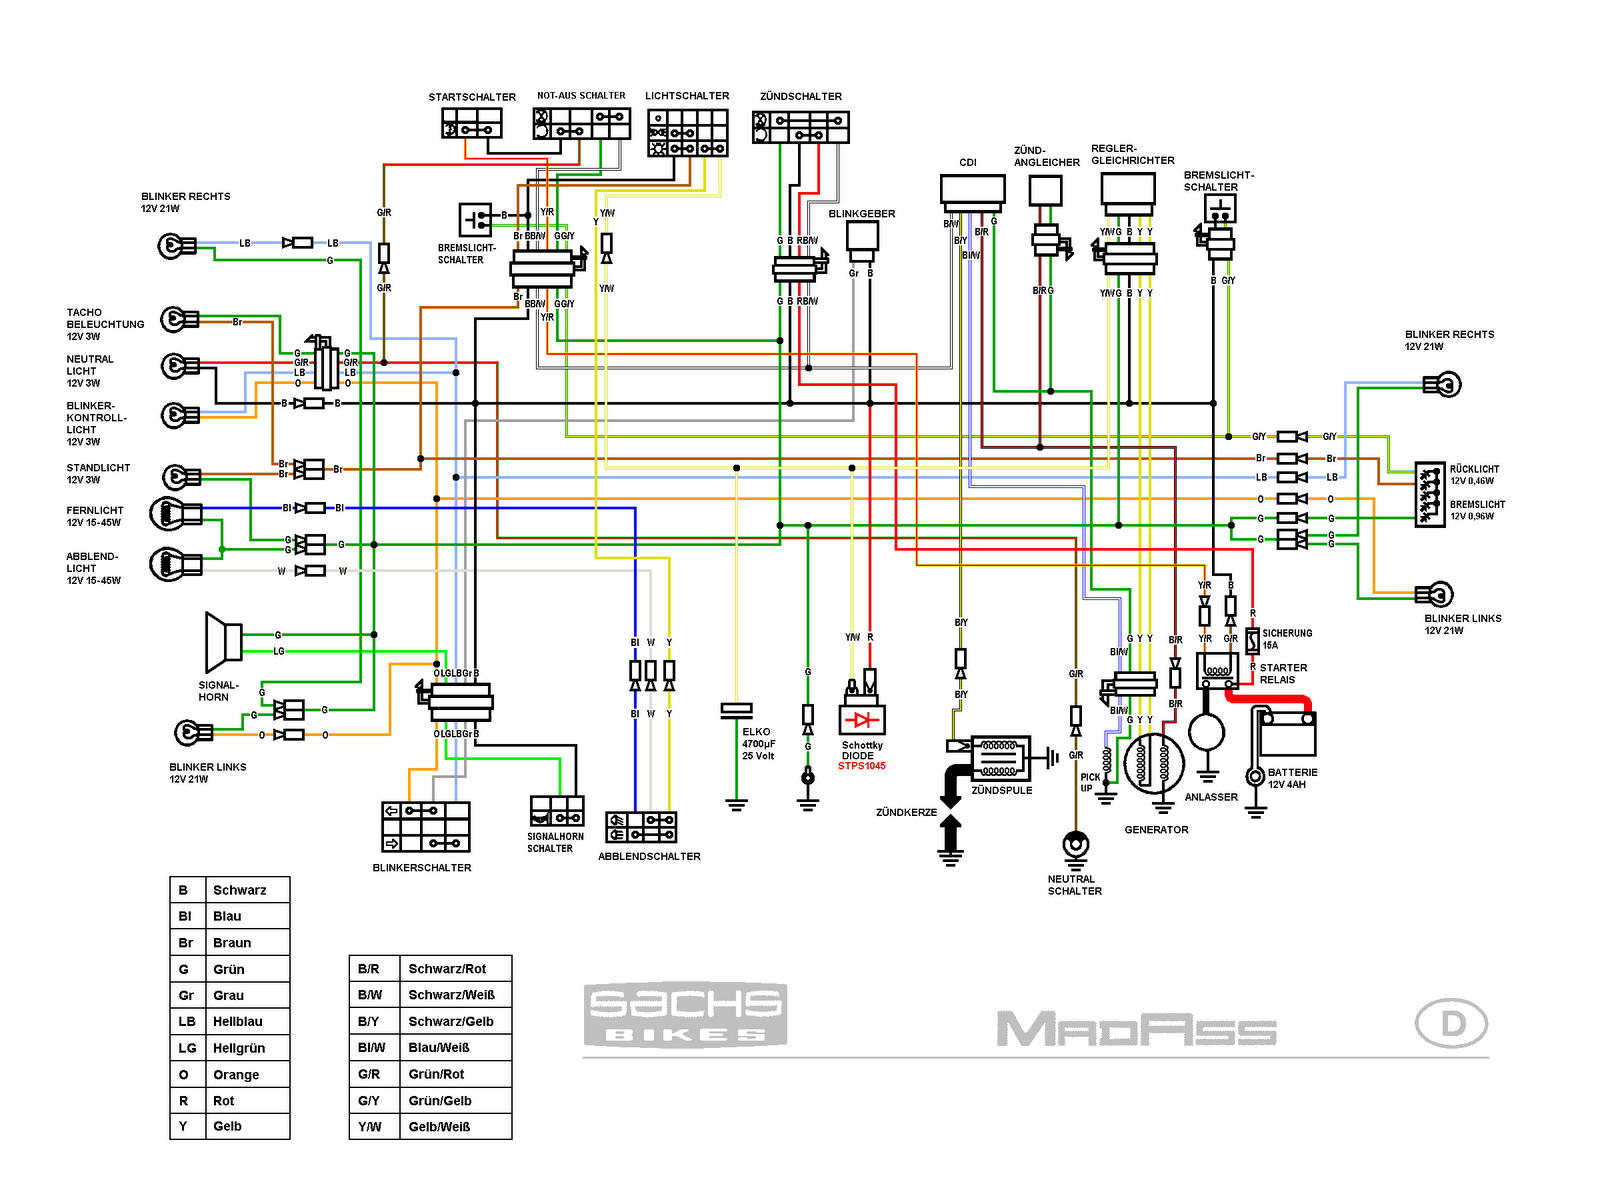 medium resolution of wiring diagram 2007 gsxr 600 cbr1000rr wiring free 05 gsxr 600 headlight wiring diagram 2005 suzuki gsxr 600 wiring diagram